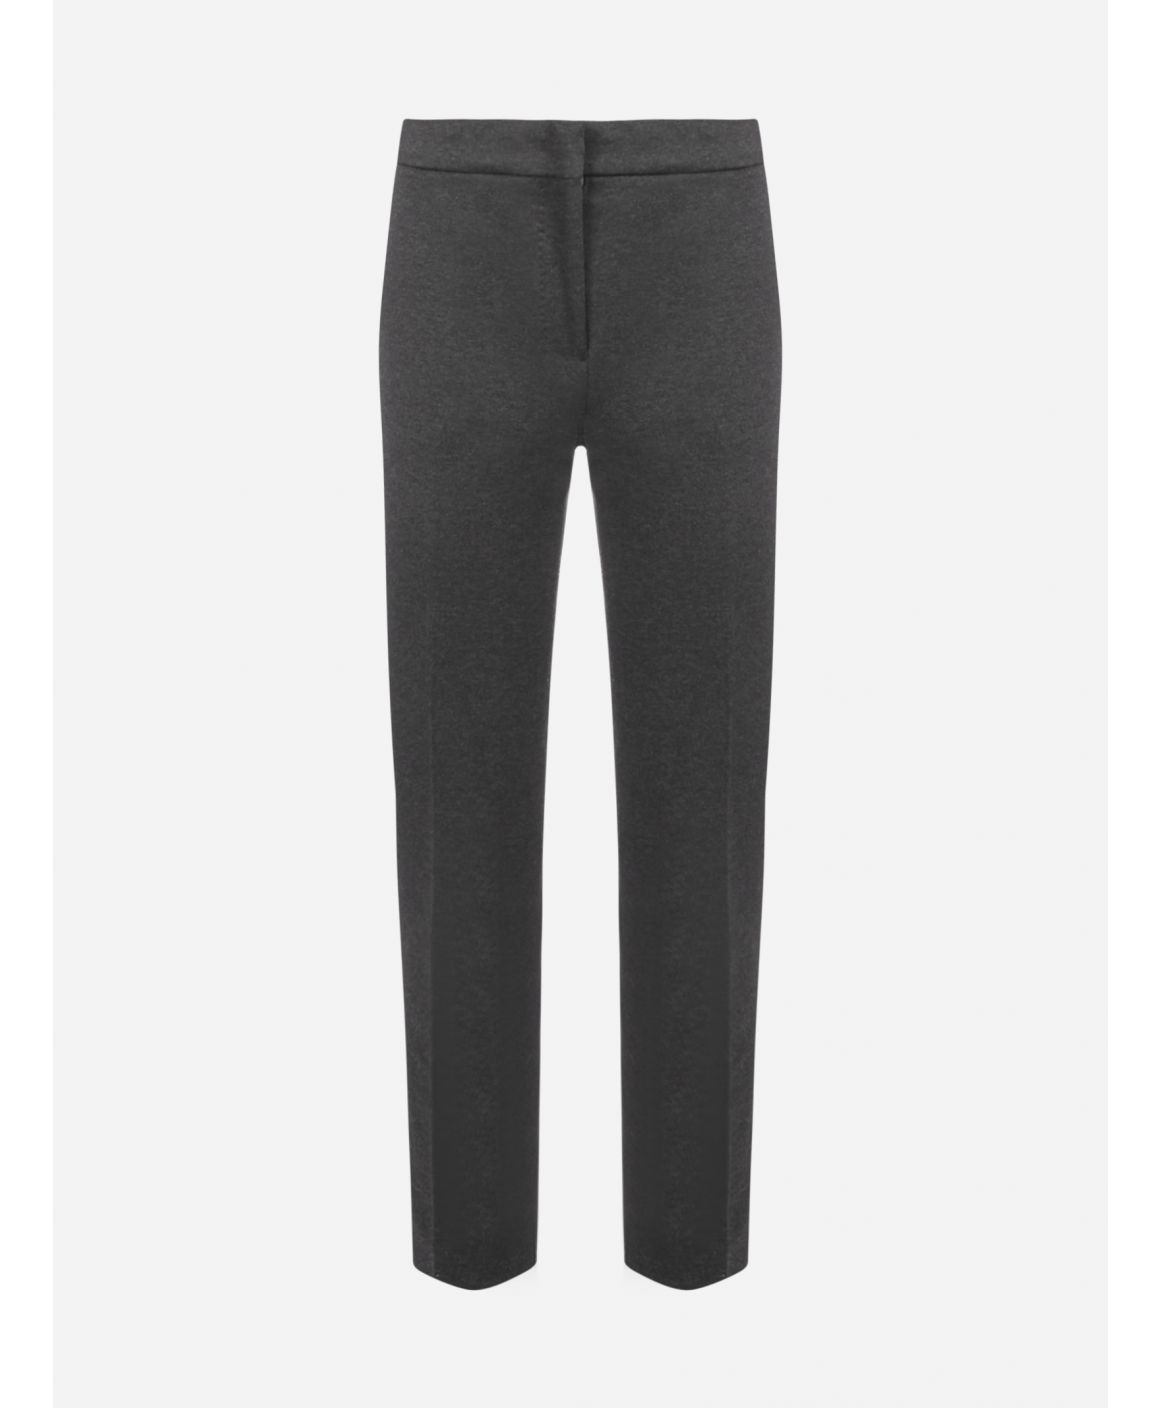 Pegno viscose jersey trousers